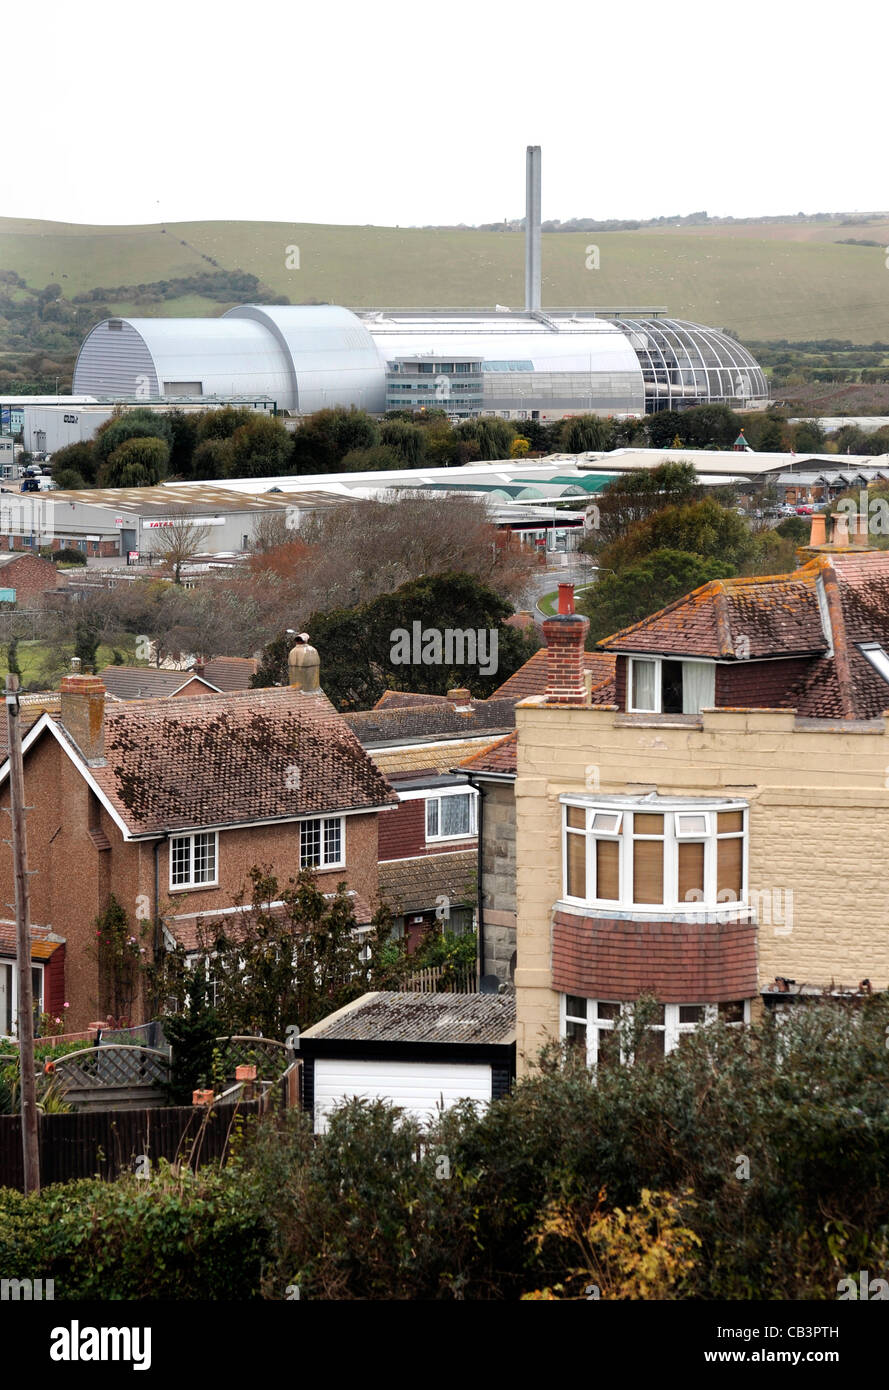 waste incinerator, newhaven, east sussex dominates the town - Stock Image